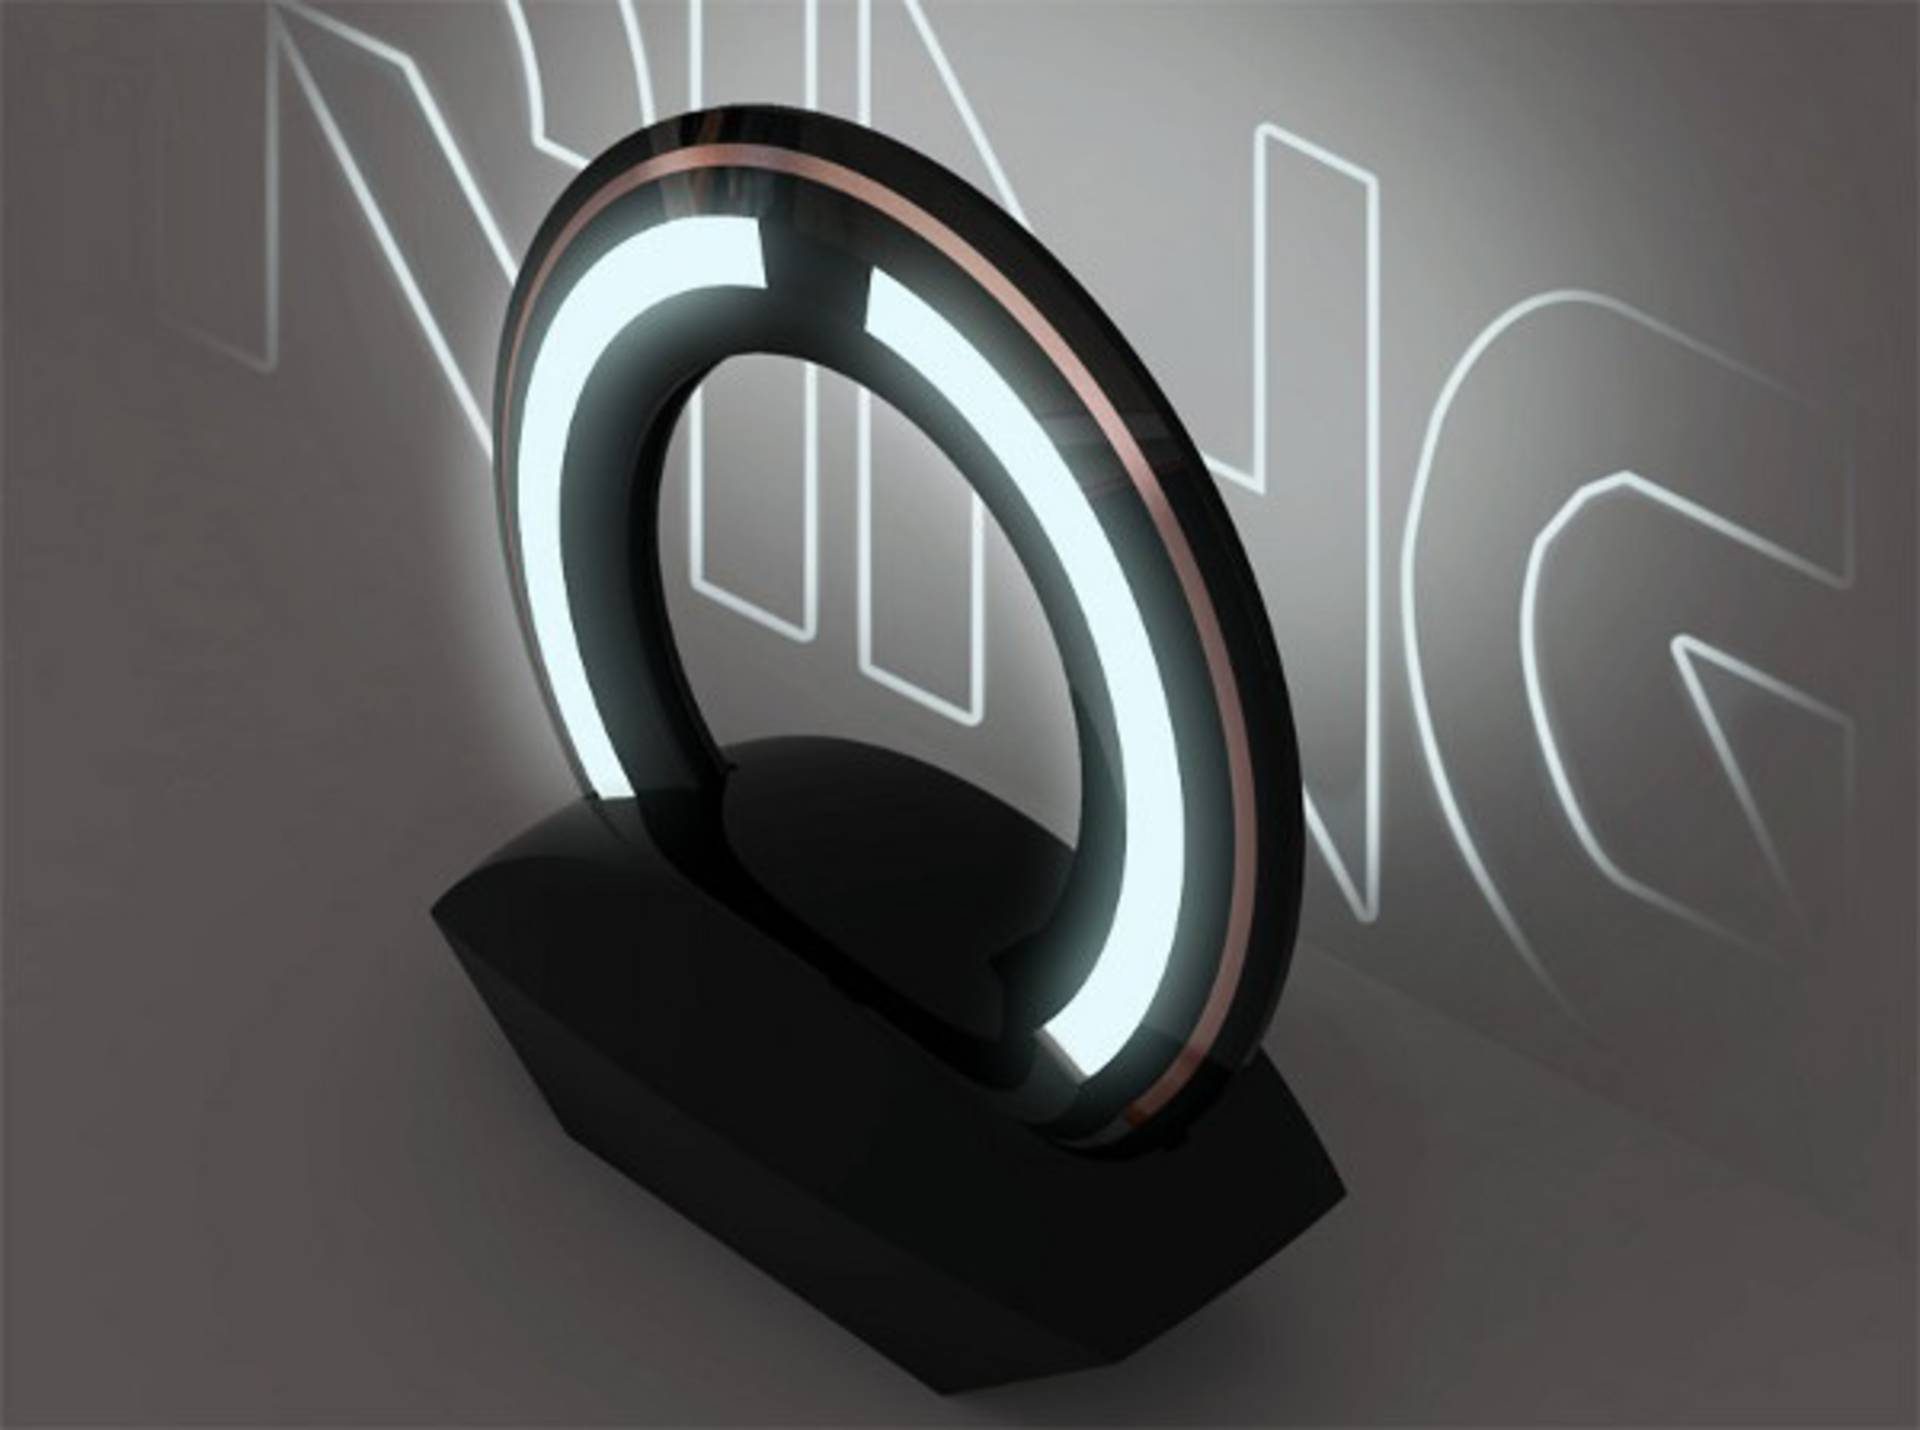 Superior Surreal Ring Lamp By Loris Bottello: Turn On The Future Photo